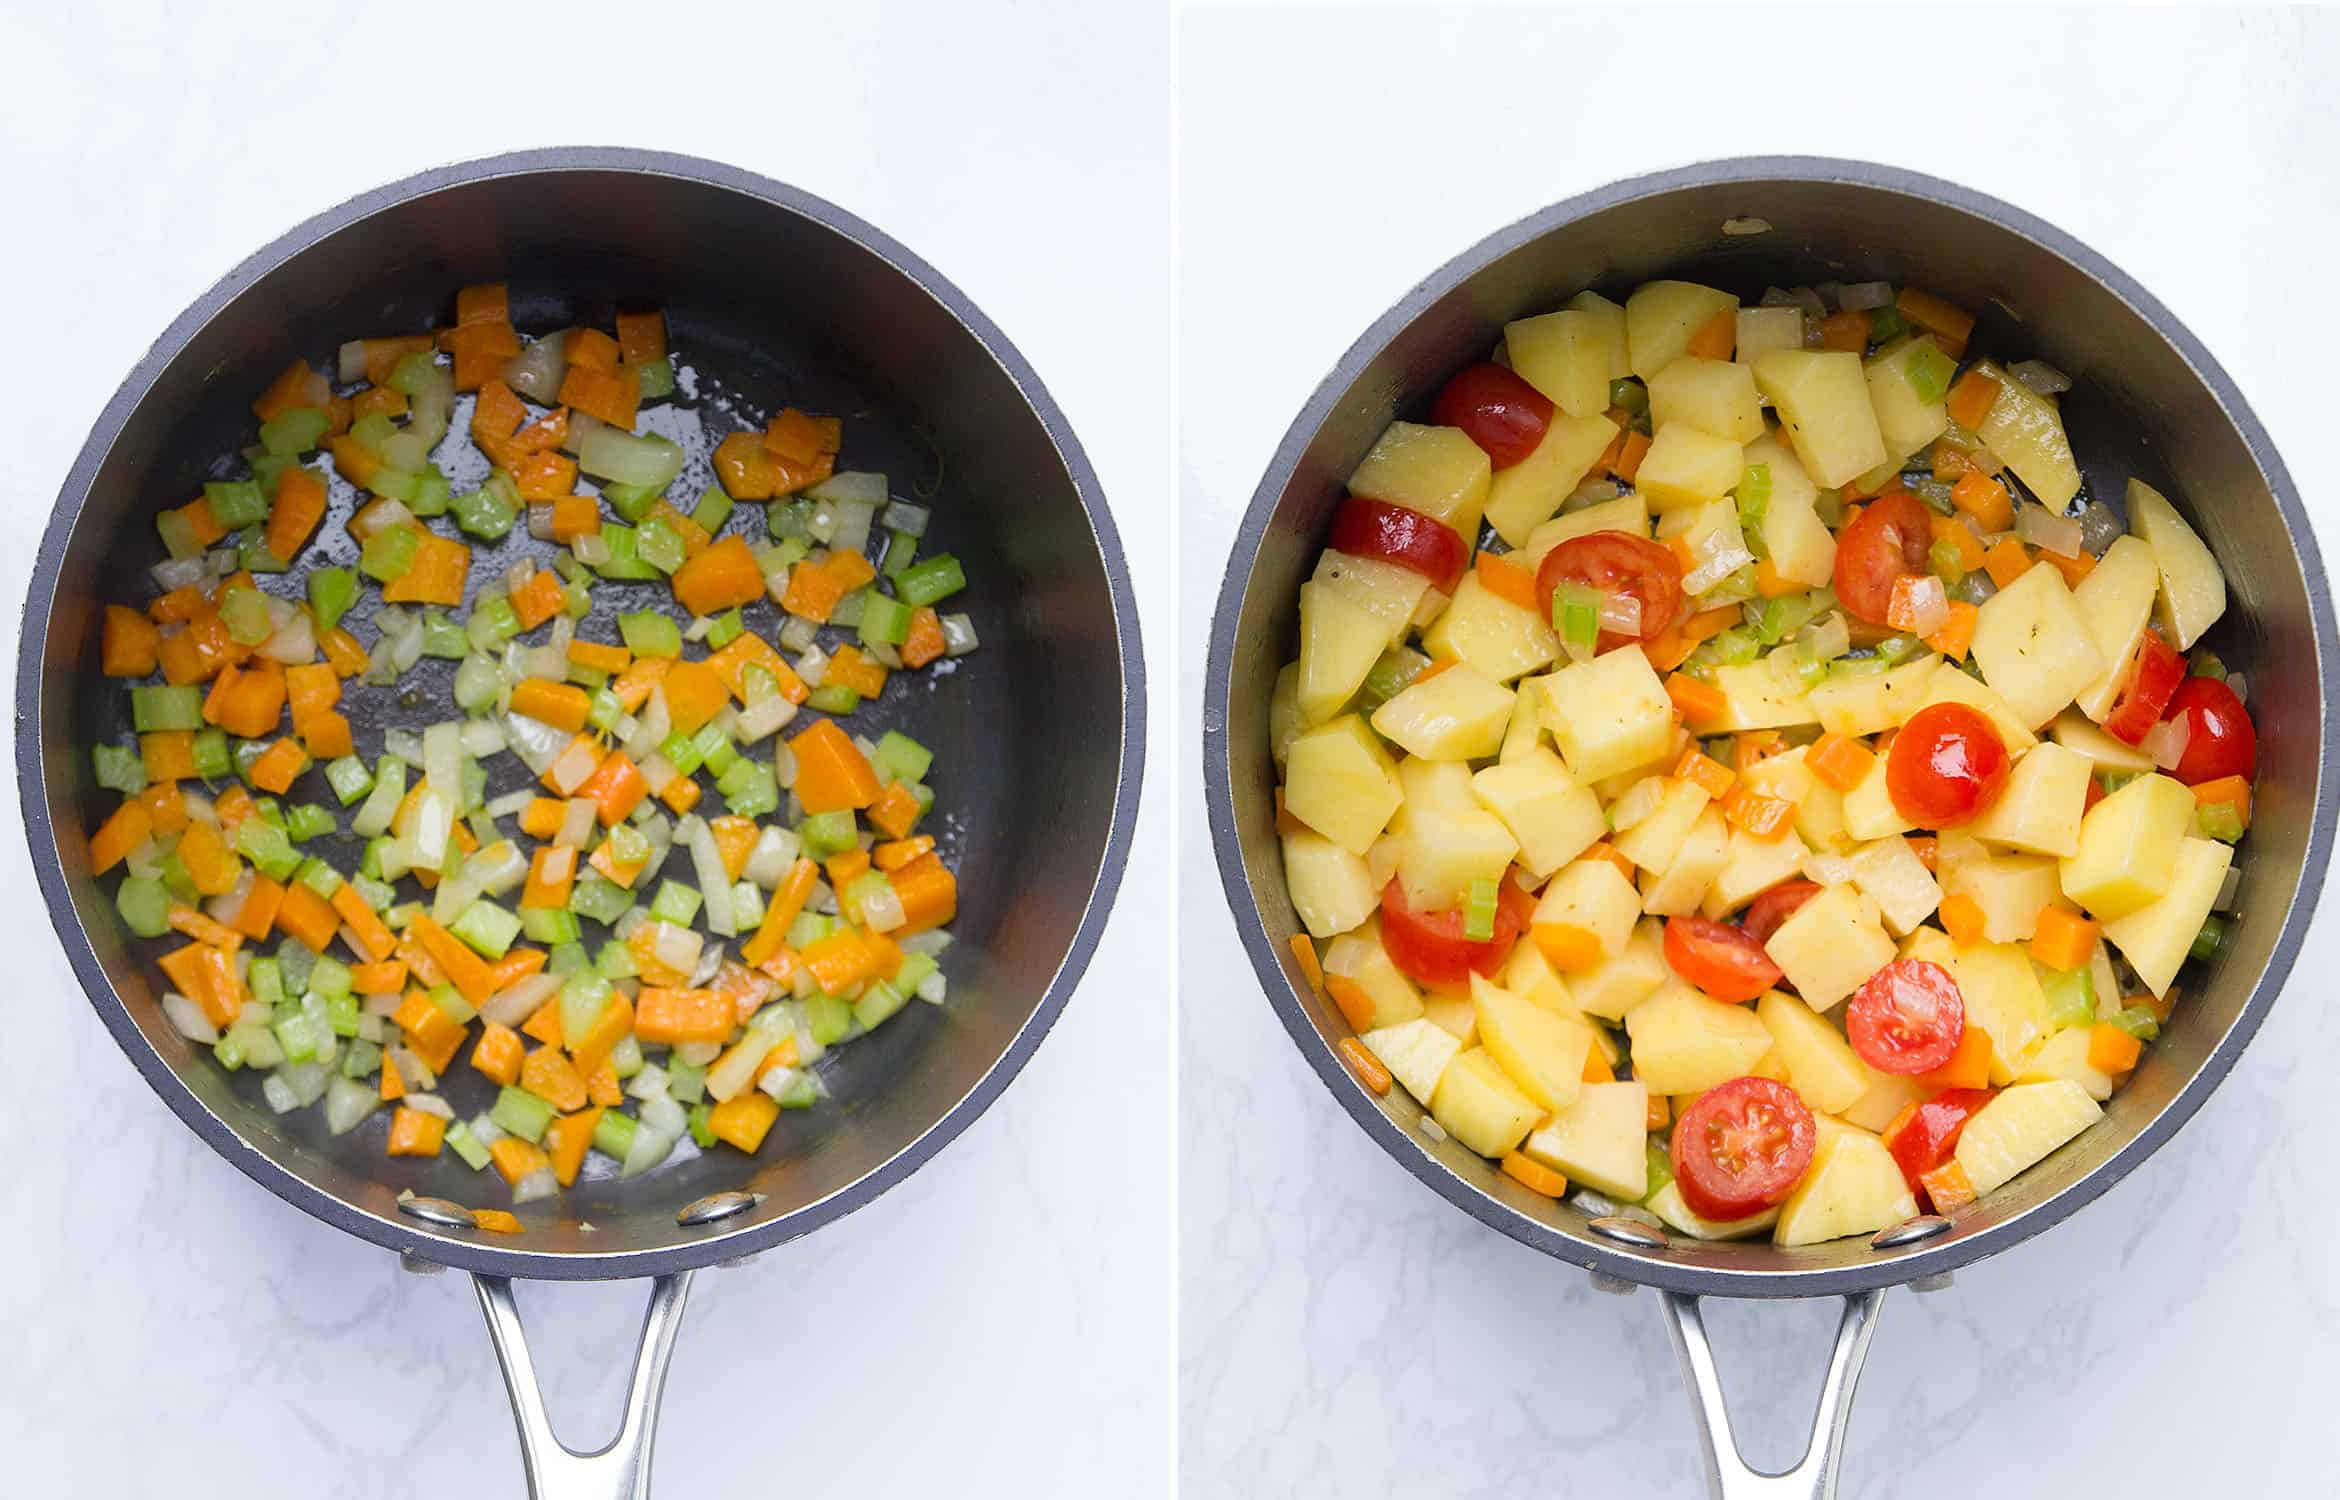 Diced vegetable in a black pan and the addition of tomatoes and potatoes to the same pan.